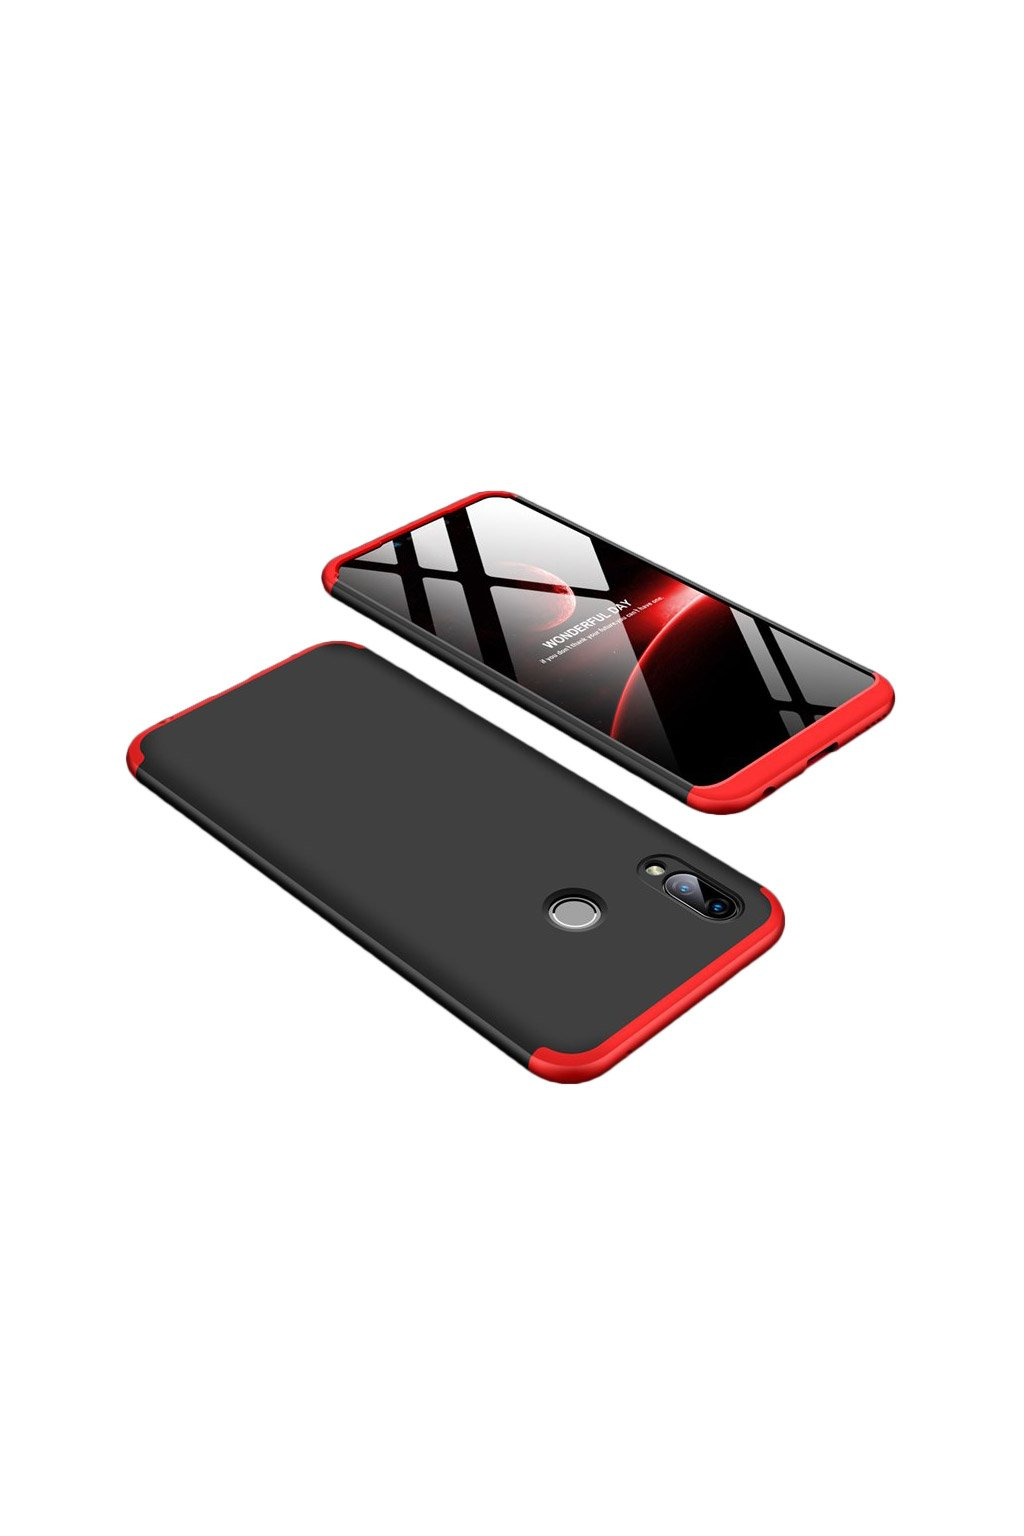 eng pl 360 Protection Front and Back Case Full Body Cover Huawei Honor Play black red 45183 1